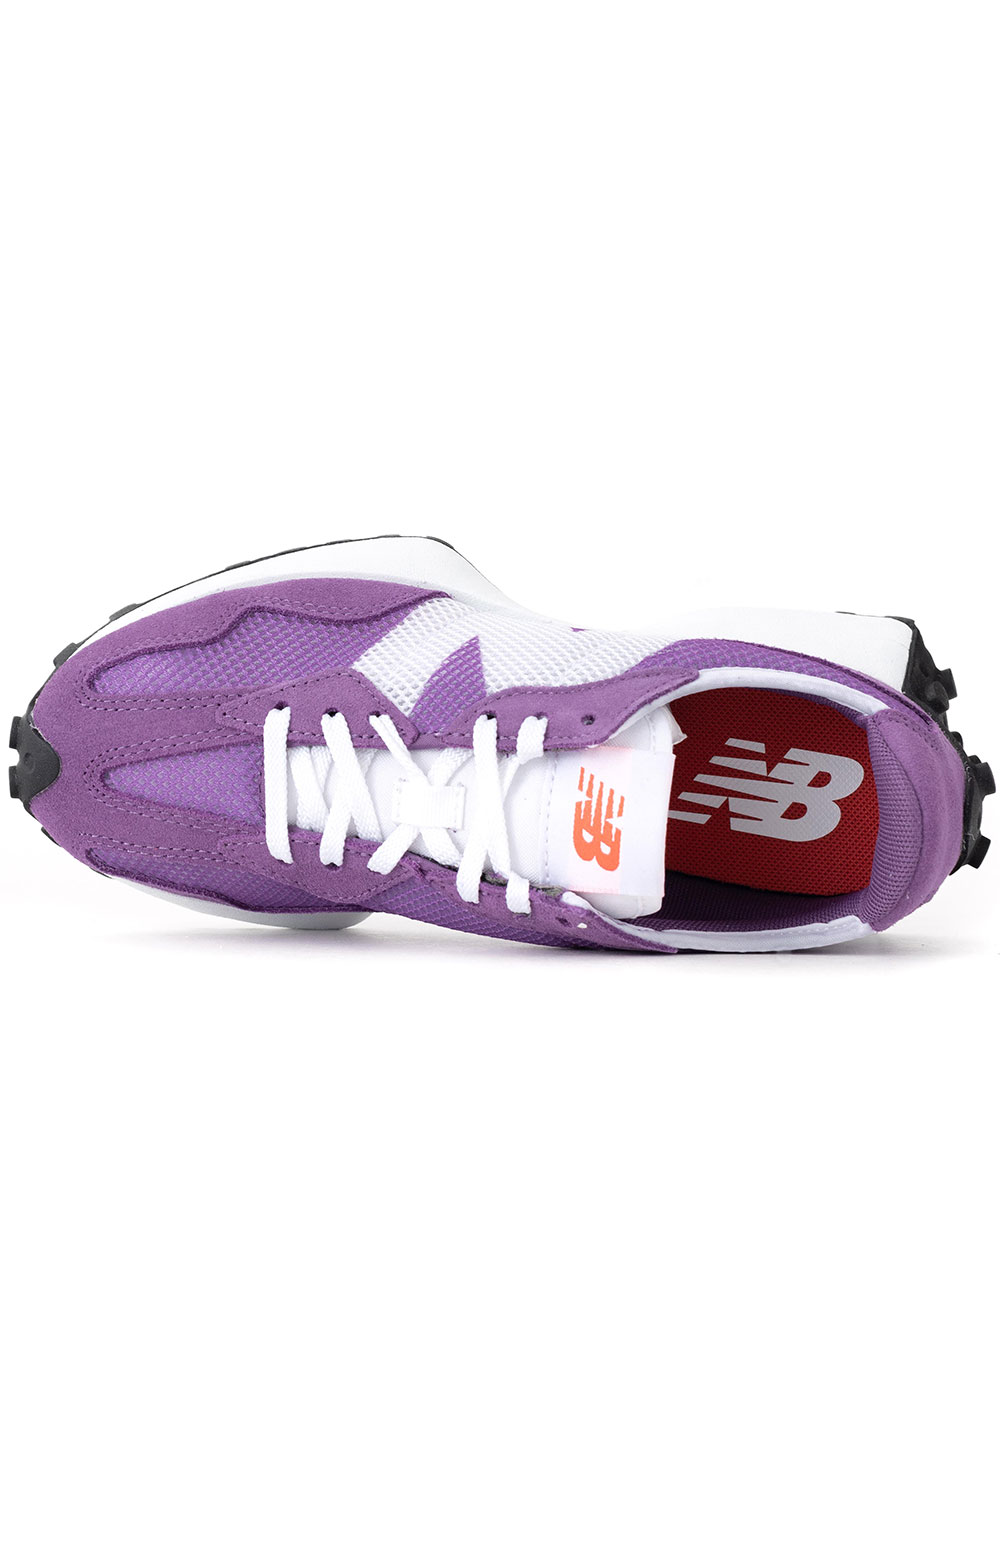 (WS327HE) 327 Shoes - Virtual Violet/Ghost Pepper  2